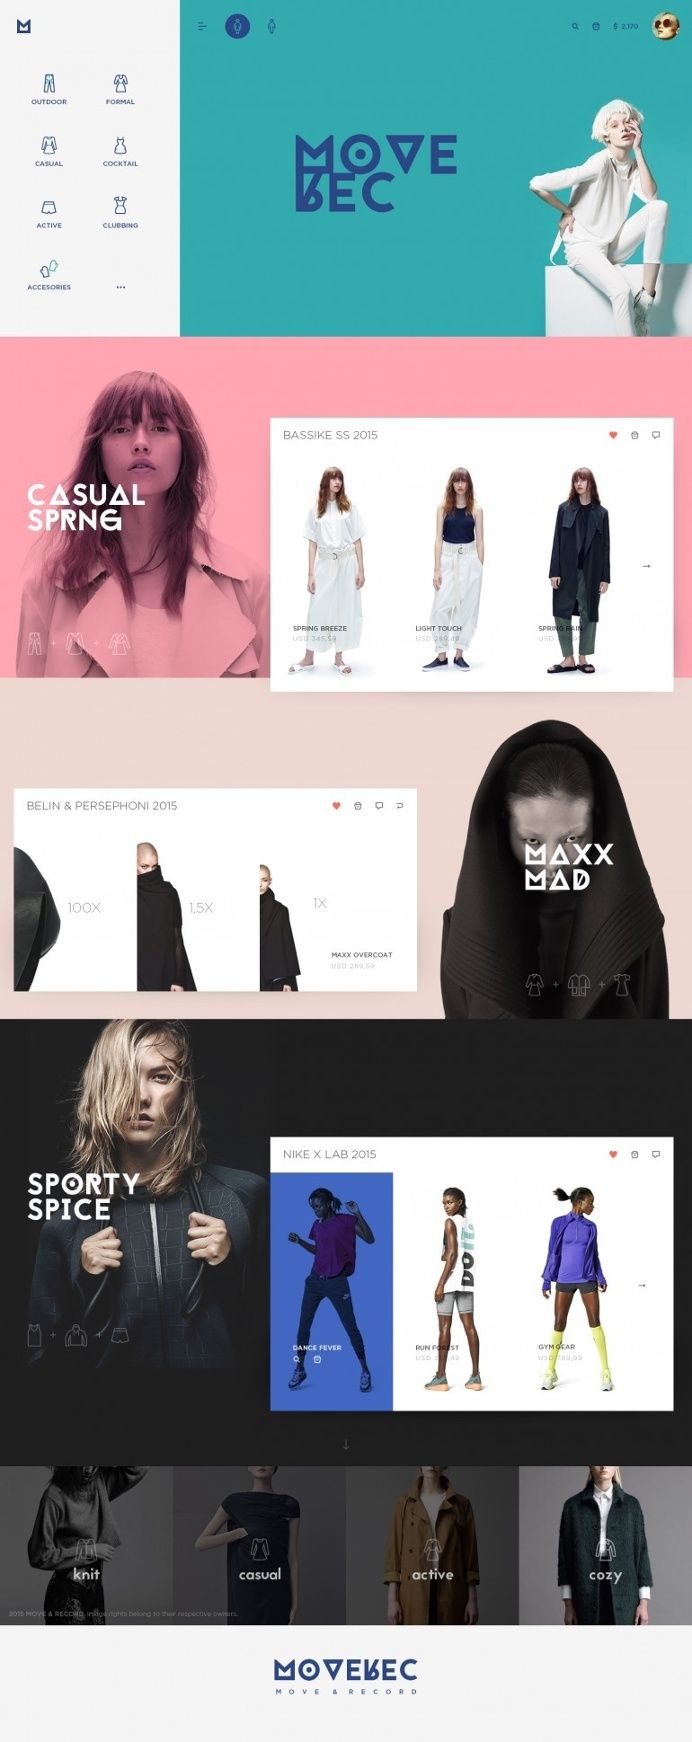 Moverec by Cosmin Capitanu in Web design